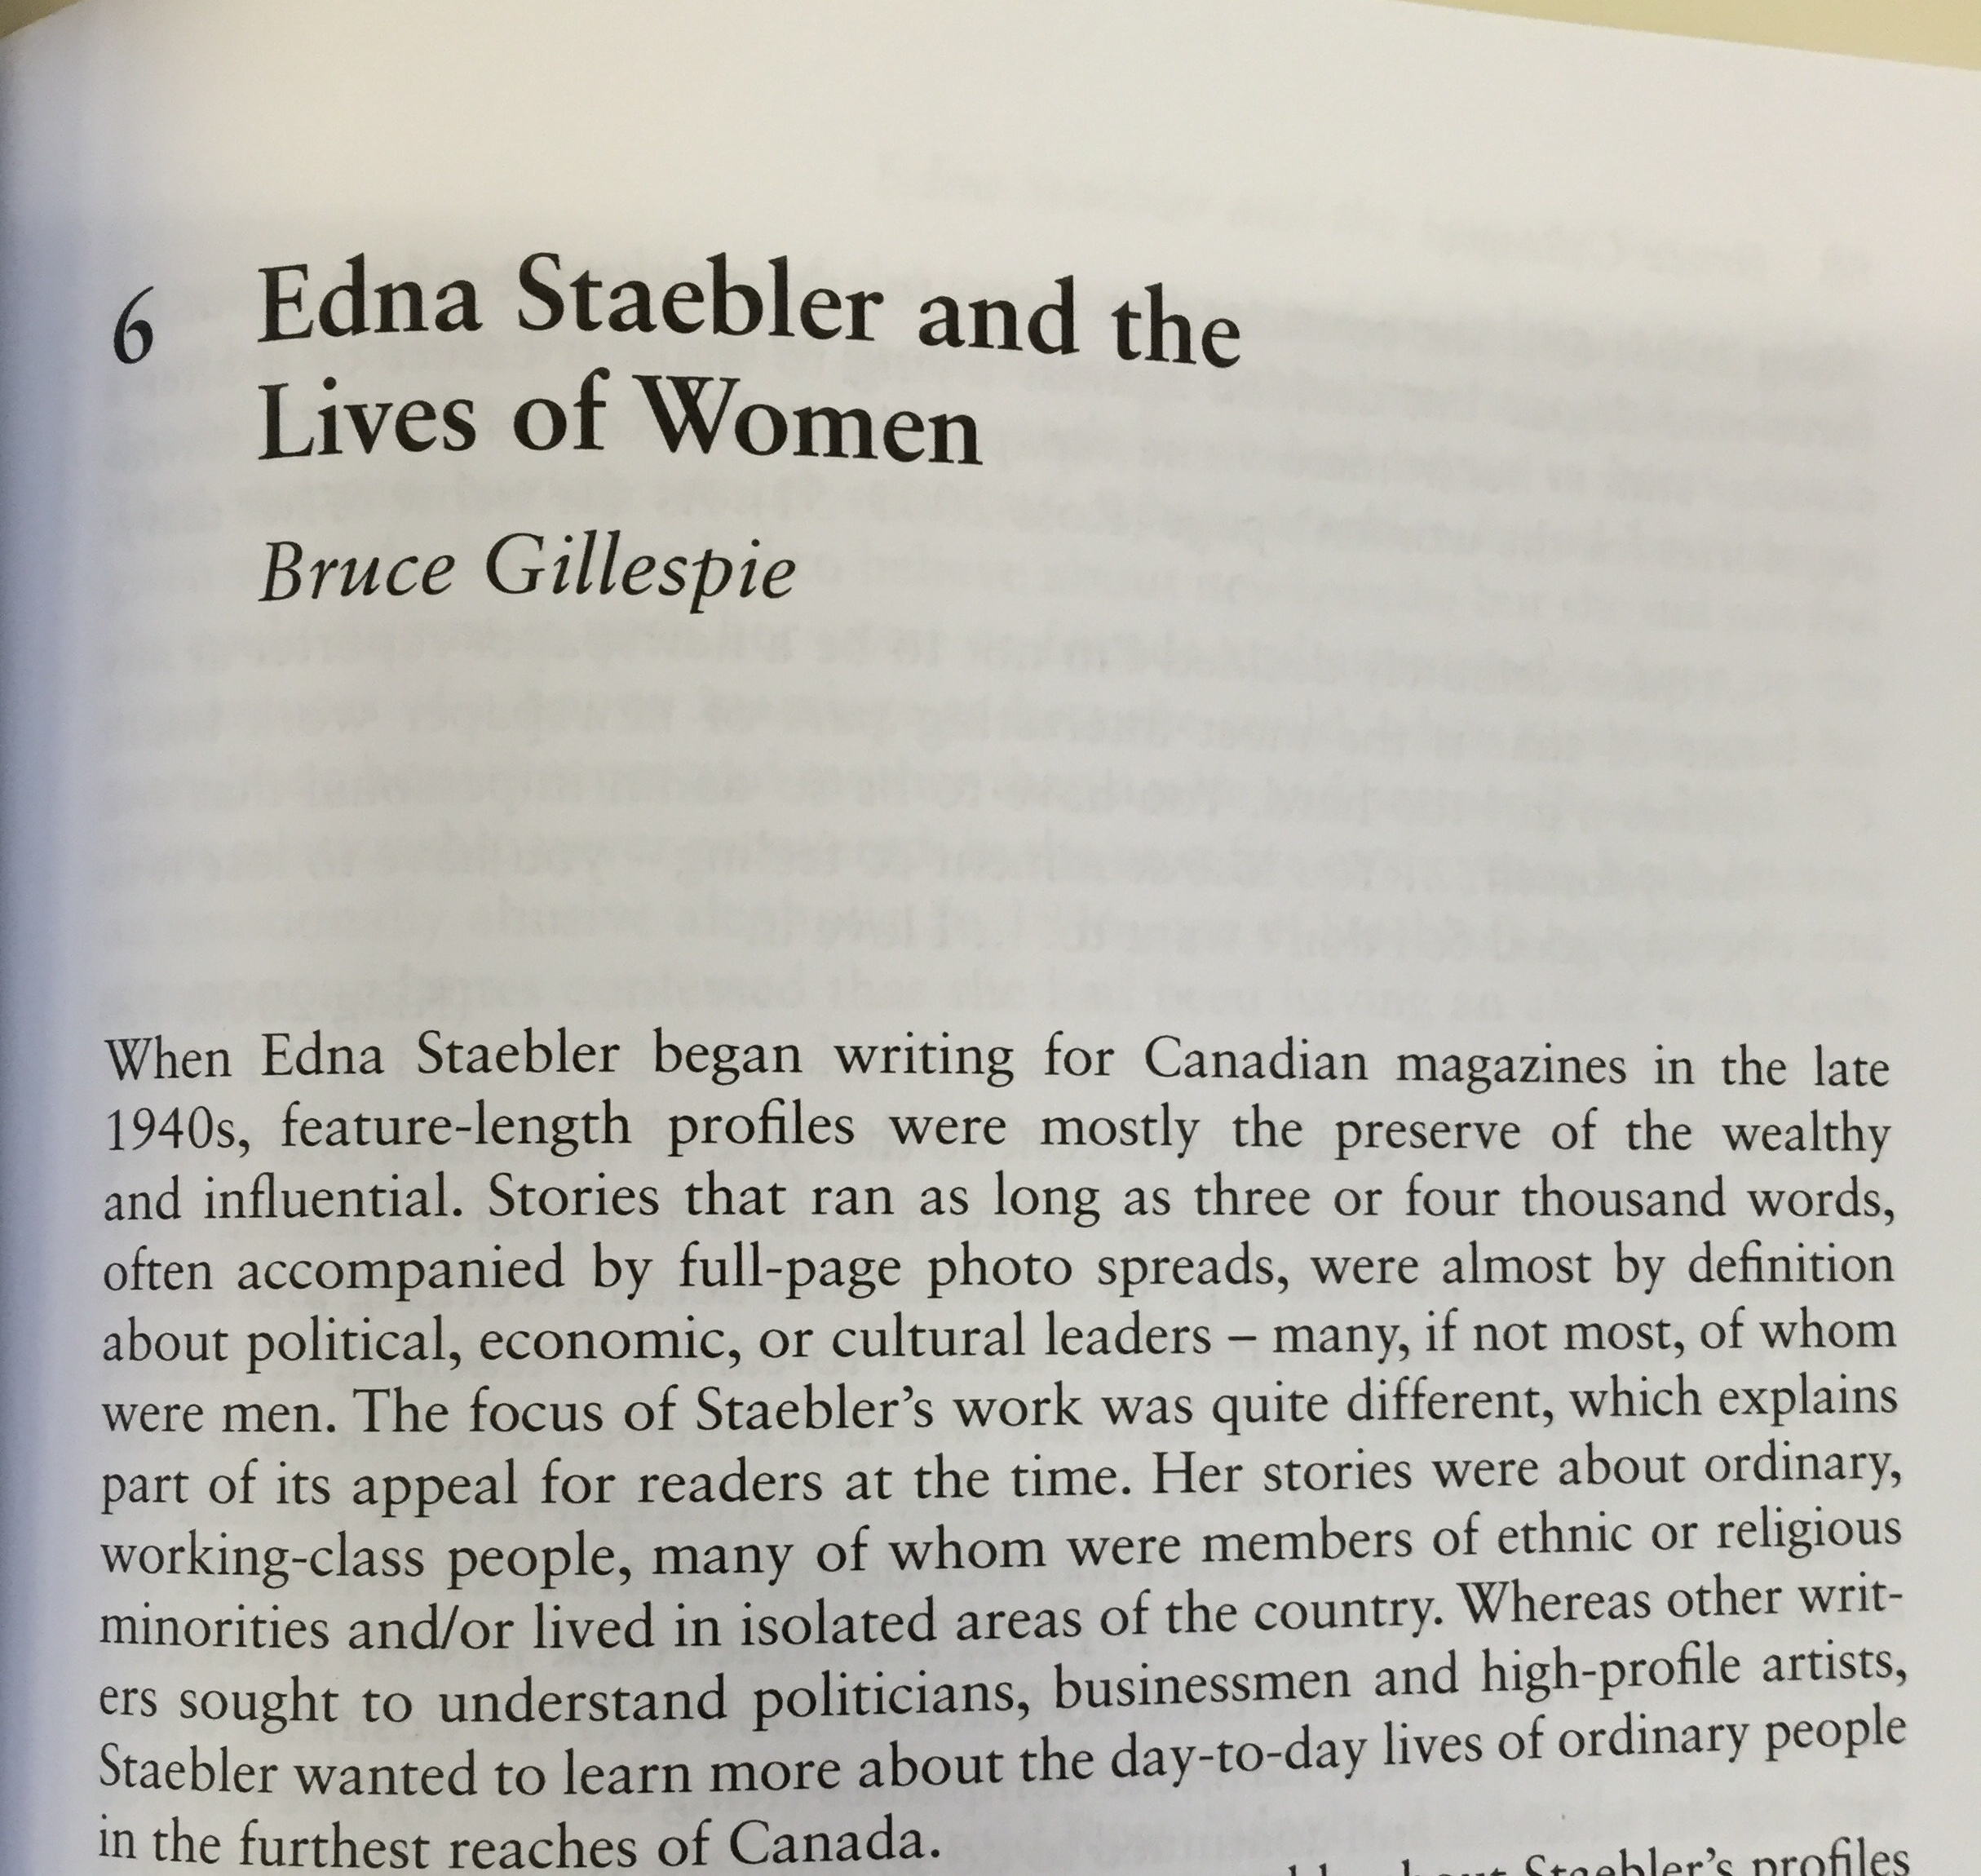 Edna Staebler and the Lives of Women